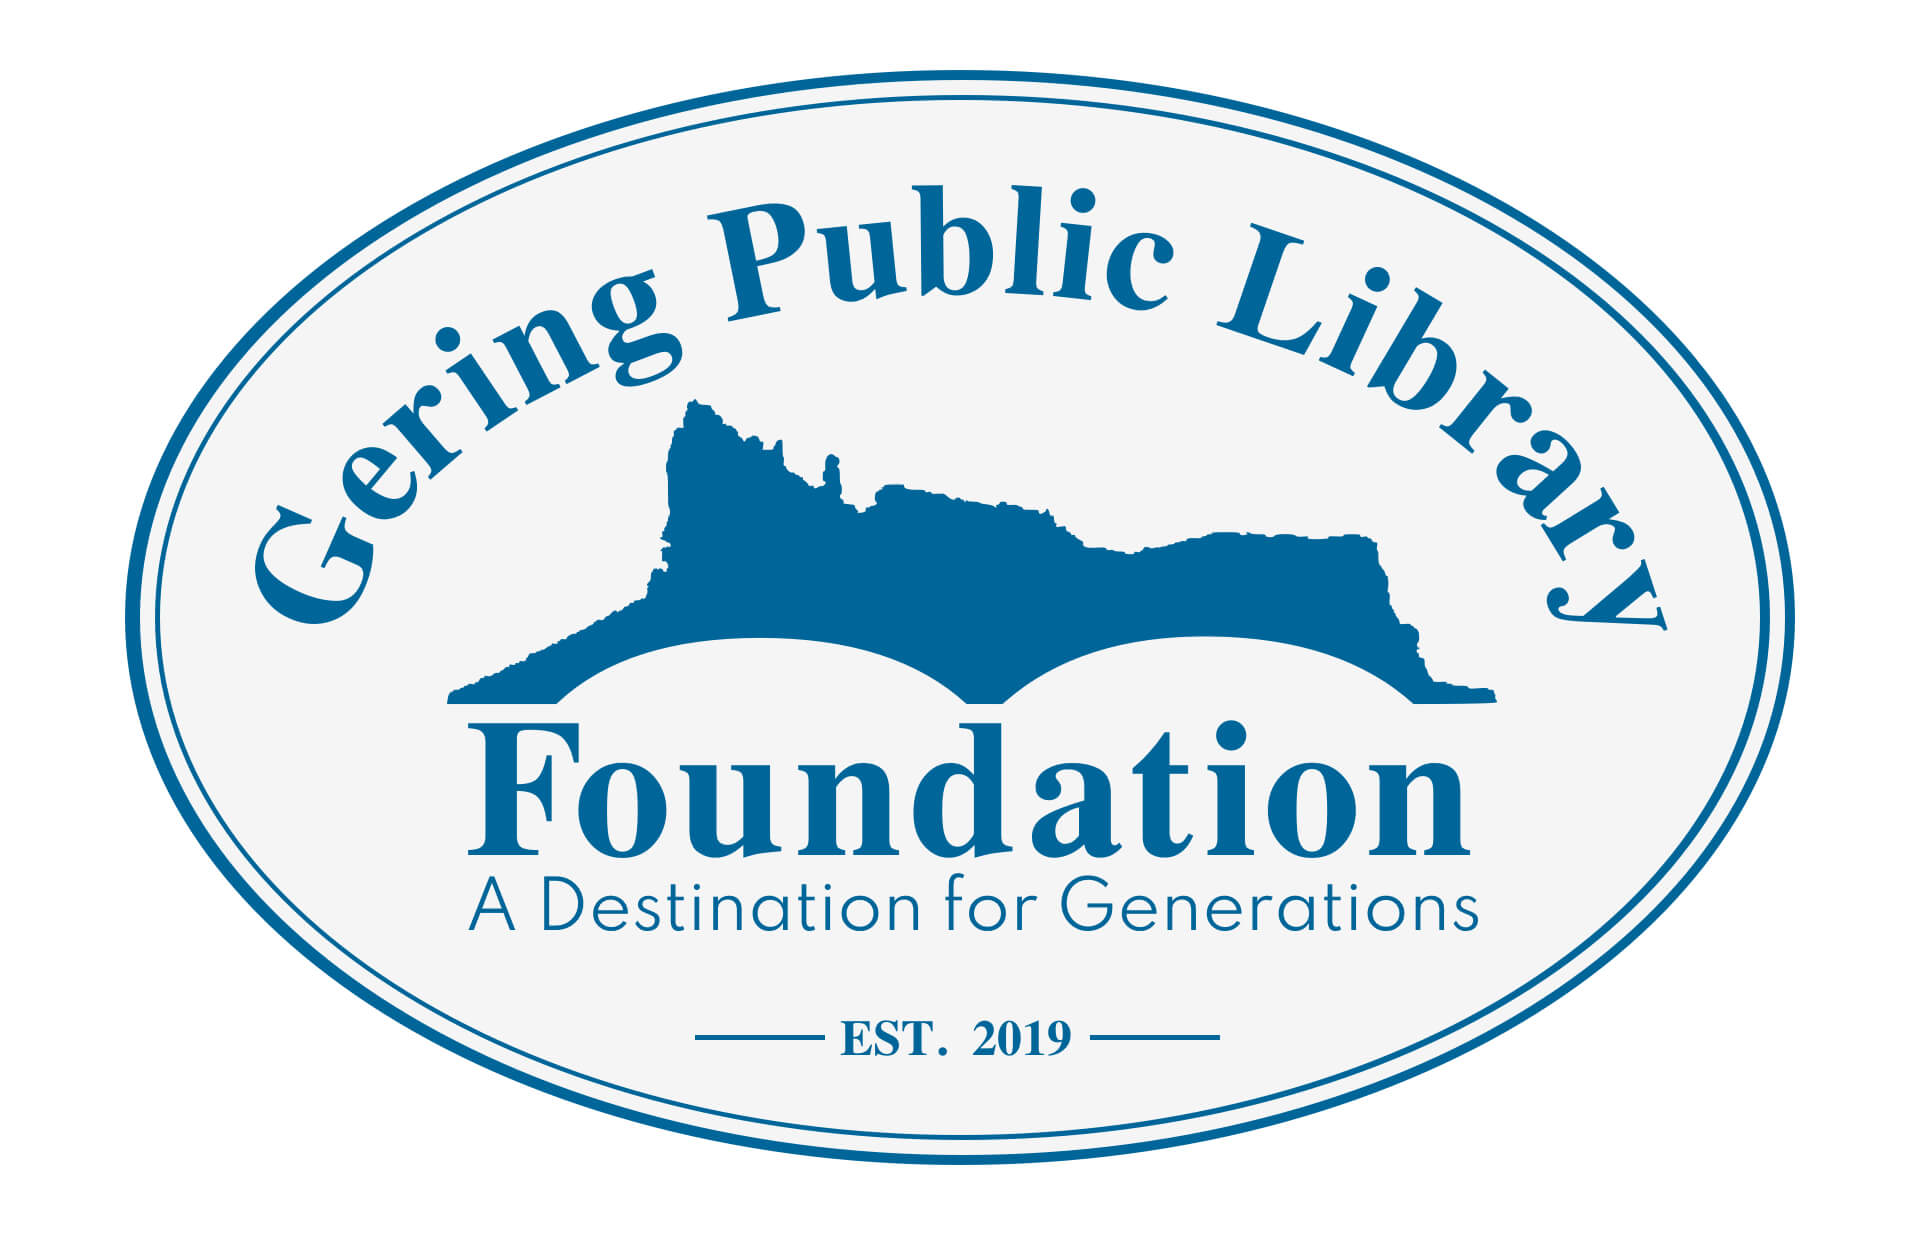 """Gering Public Library Foundation Logo. Blue and White with name and """"a destination for generations"""" slogan with Established in 2019 stamp. Bluffs/mountains in back ground all oval shaped"""